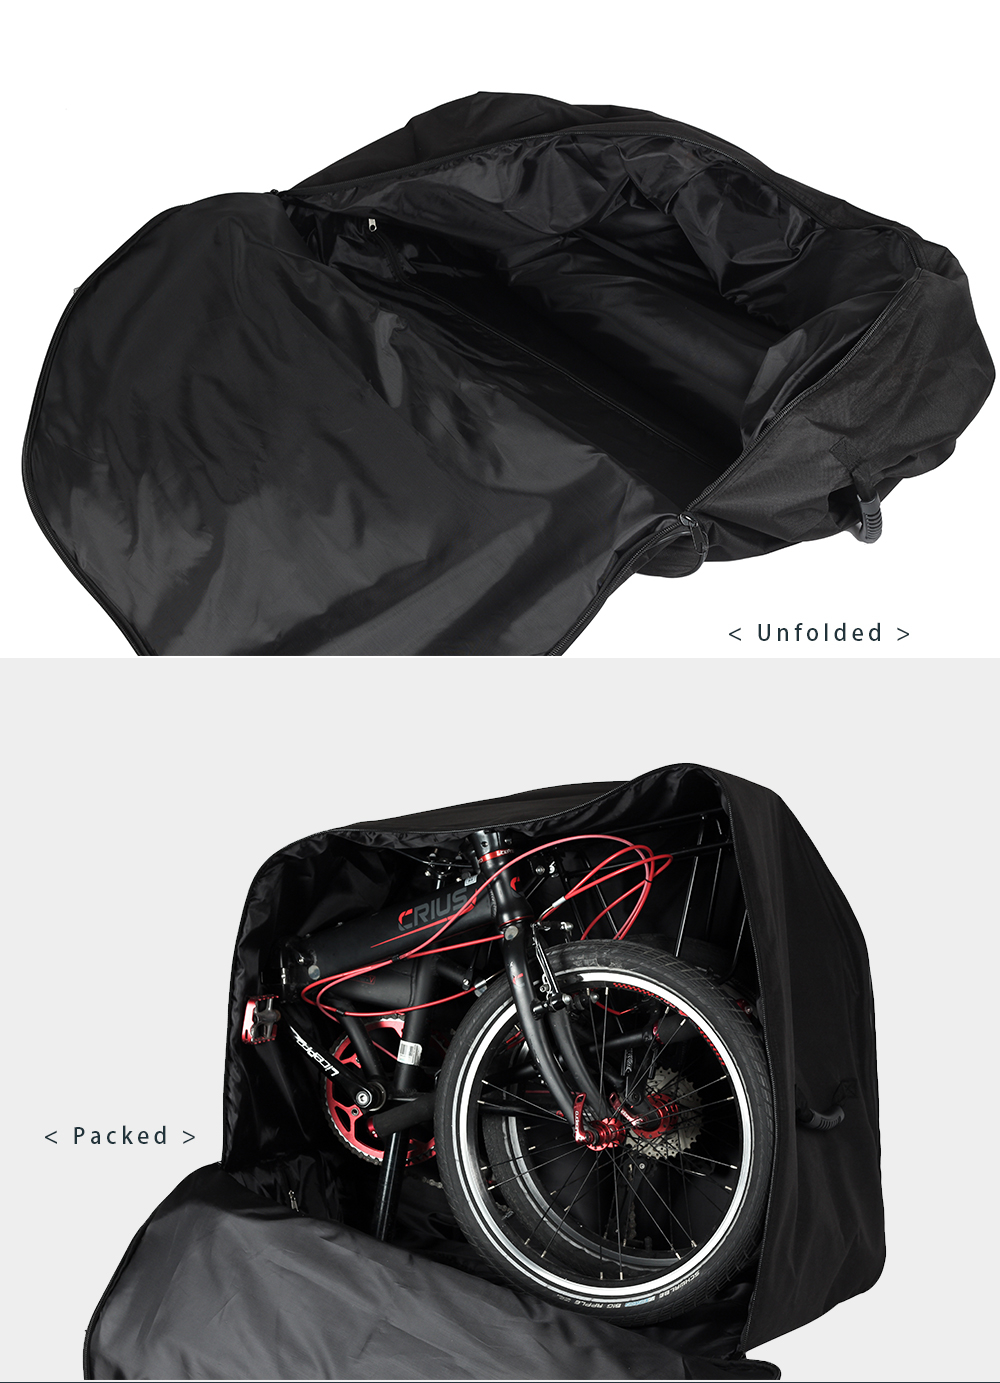 Rhinowalk Folding Bicycle Storage Bag Oxford Wear-resisting Luggage Cases for 20-22 Inch Folding Bike Electric Vehicles (12)